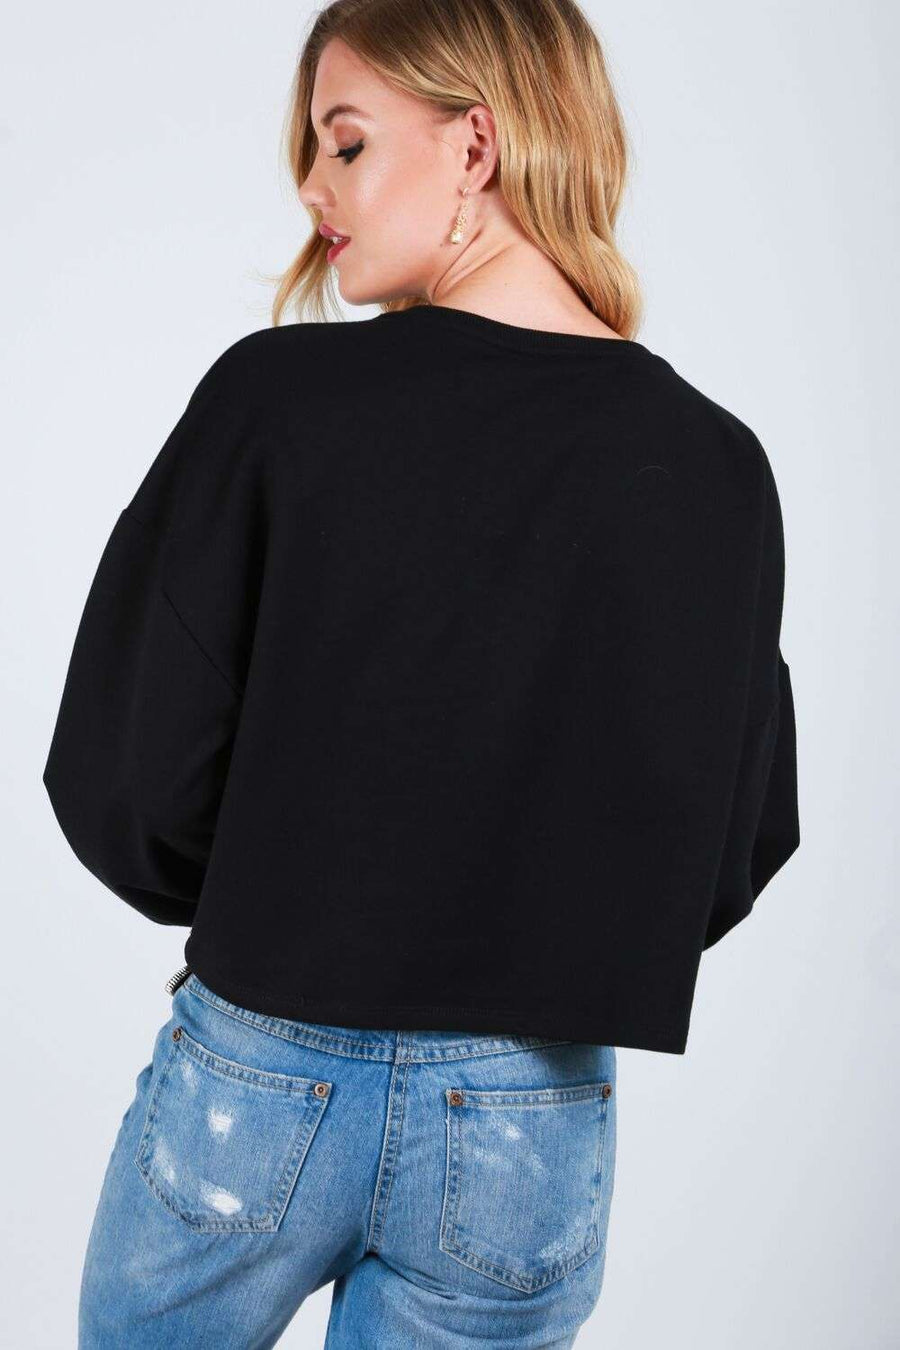 Alice Tassel Front Balloon Sleeve Cropped Sweatshirt - bejealous-com